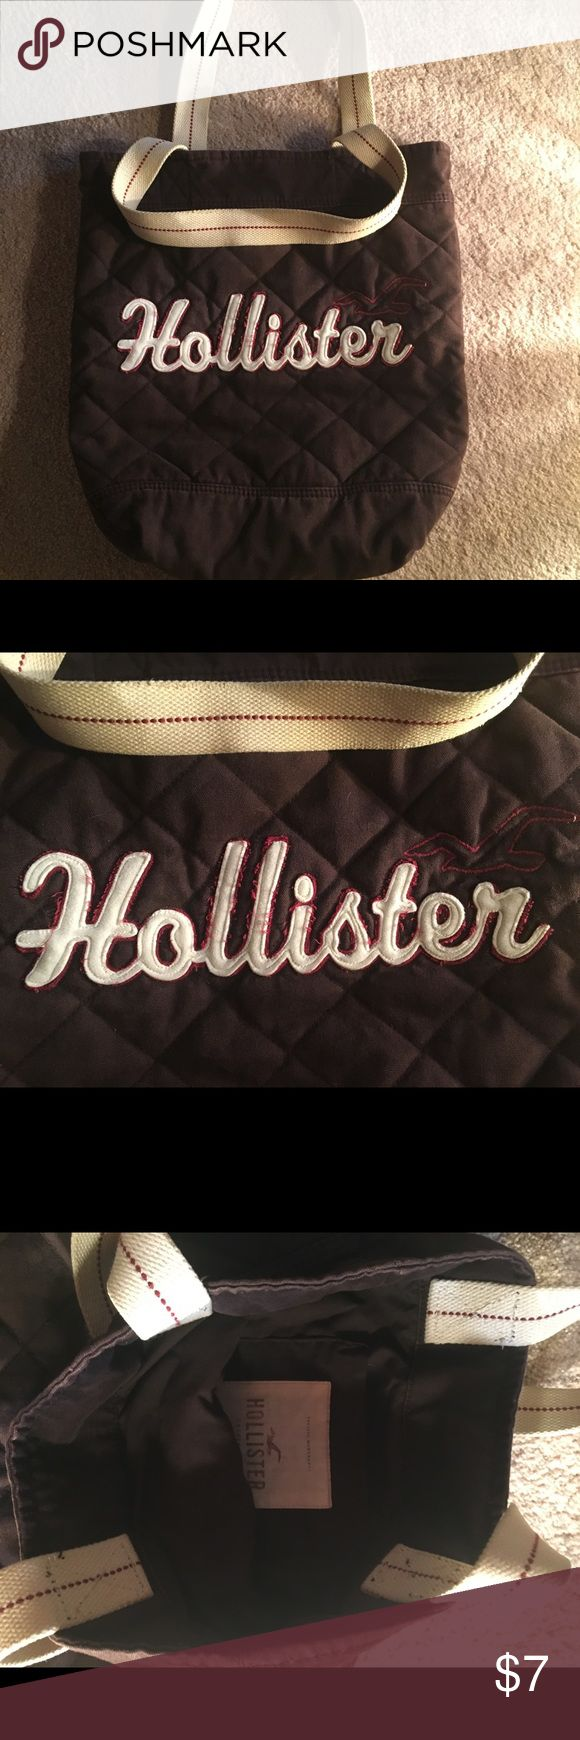 Hollister Tote Bag Cute Hollister Bag. Gently Used. Great for school or shopping. Hollister Bags Totes